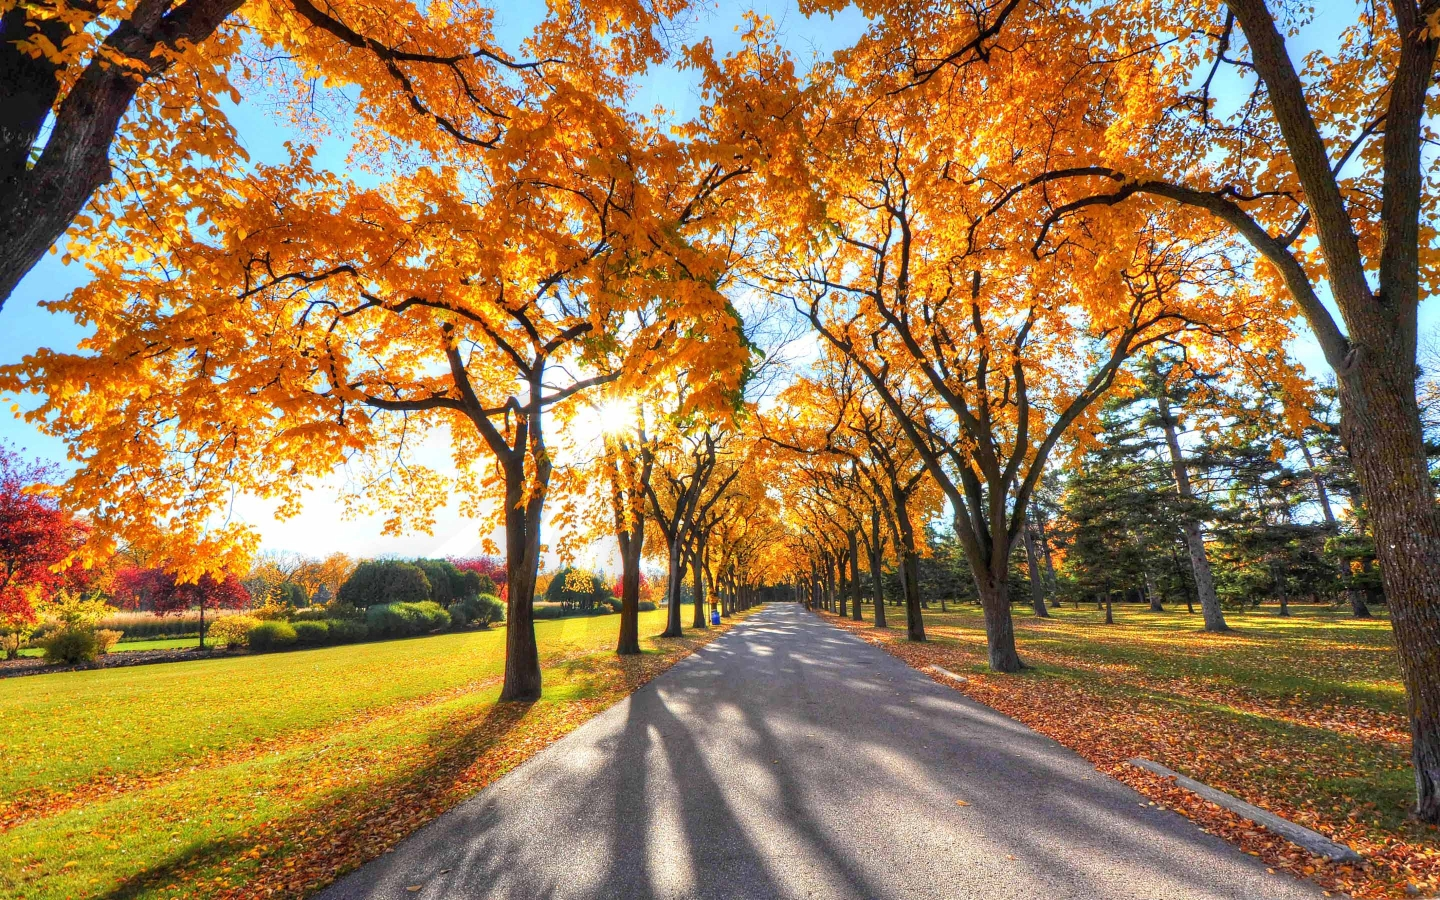 Park Landscape Autumn Mac Wallpaper Download Free Mac Wallpapers